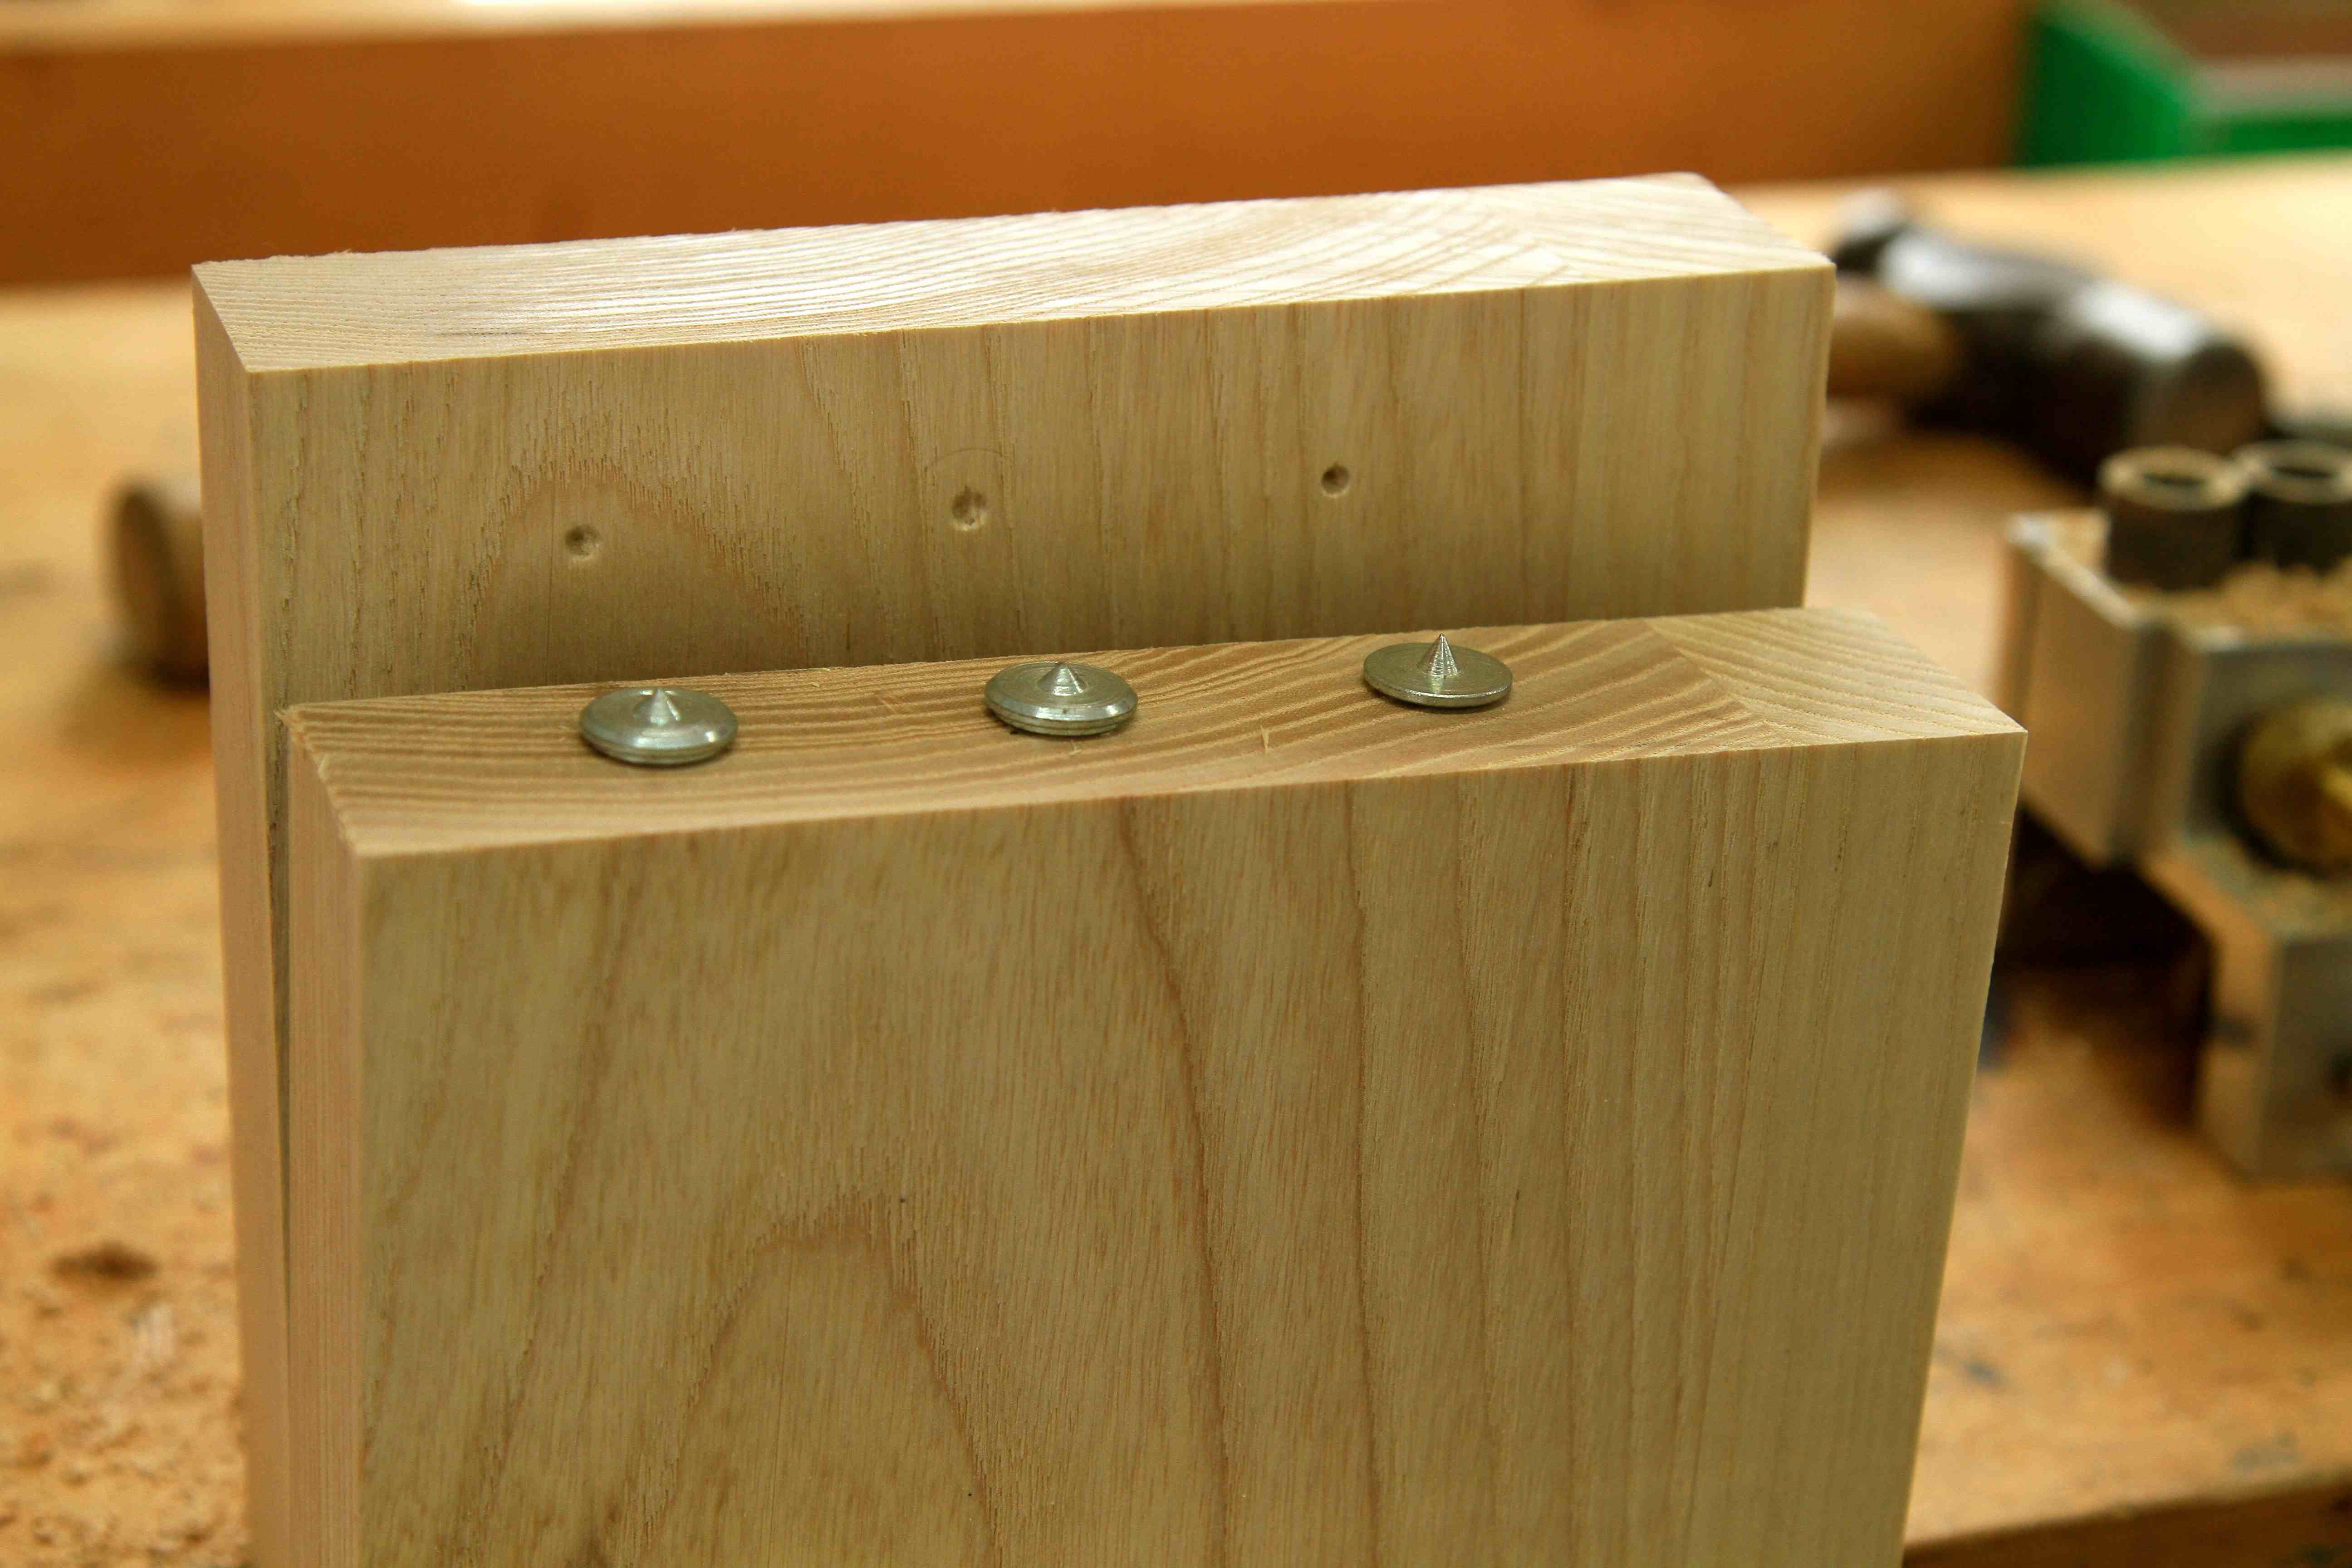 Joining Dowels